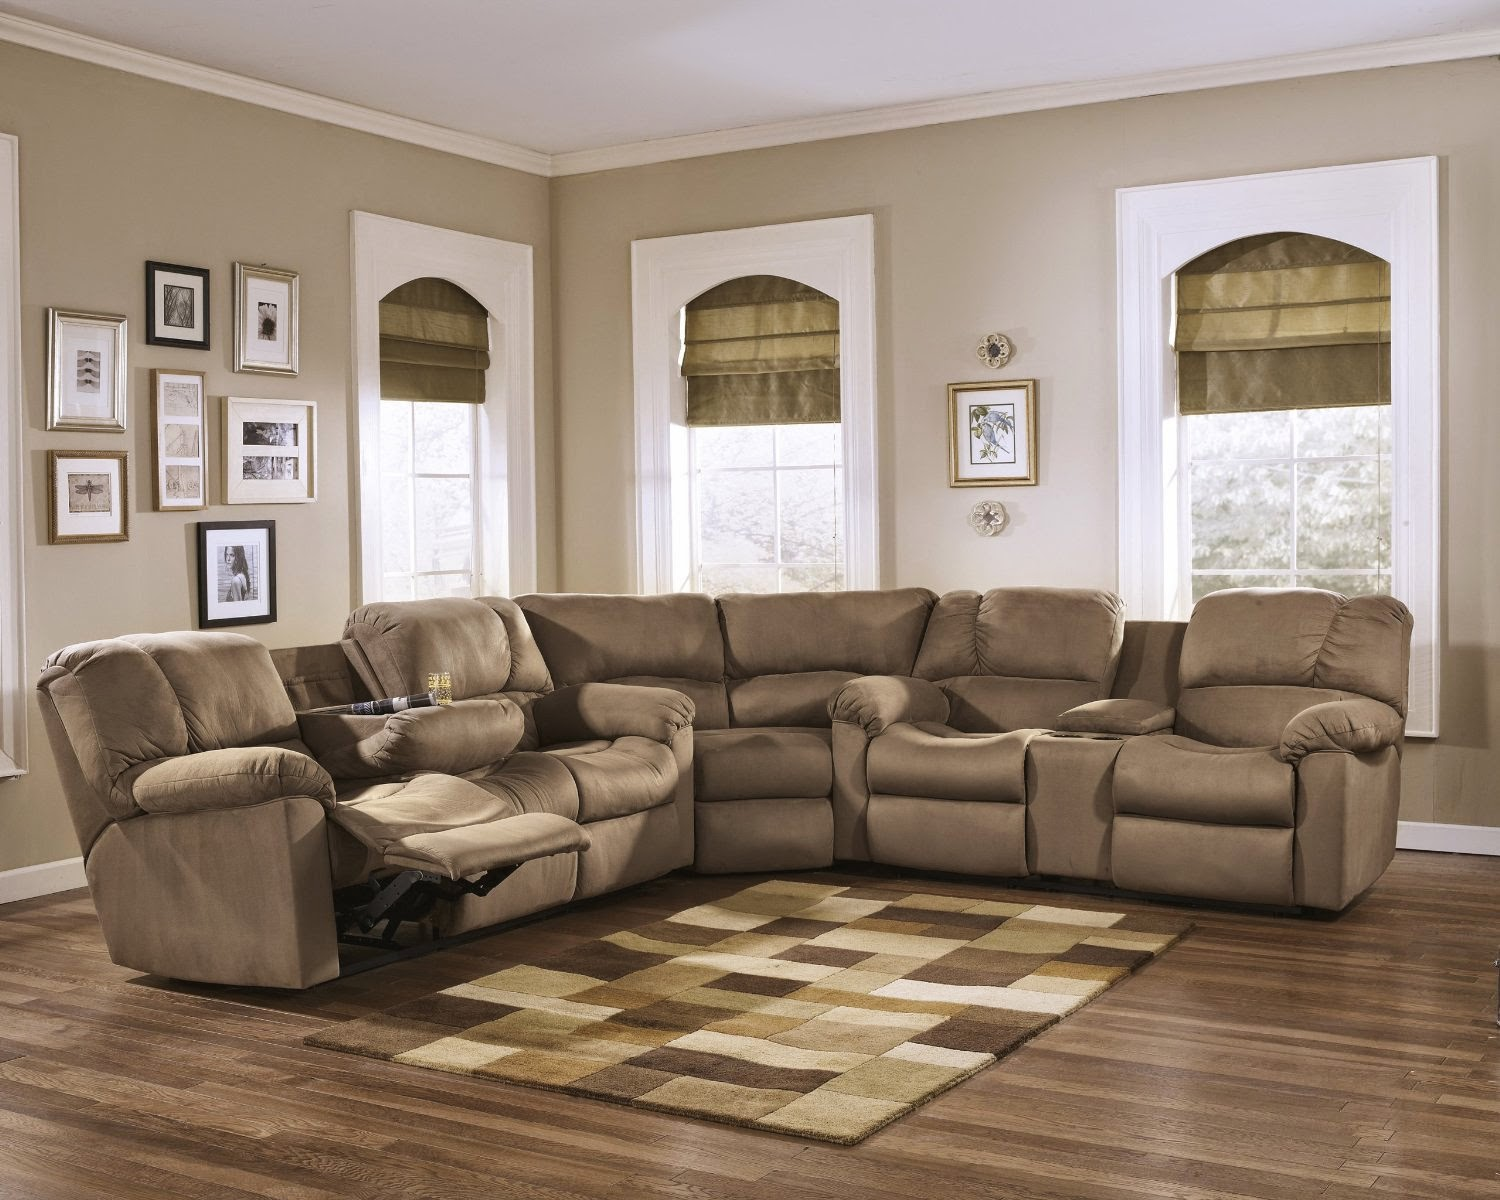 The Best Reclining Sofas Reviews: Reclining Sectional